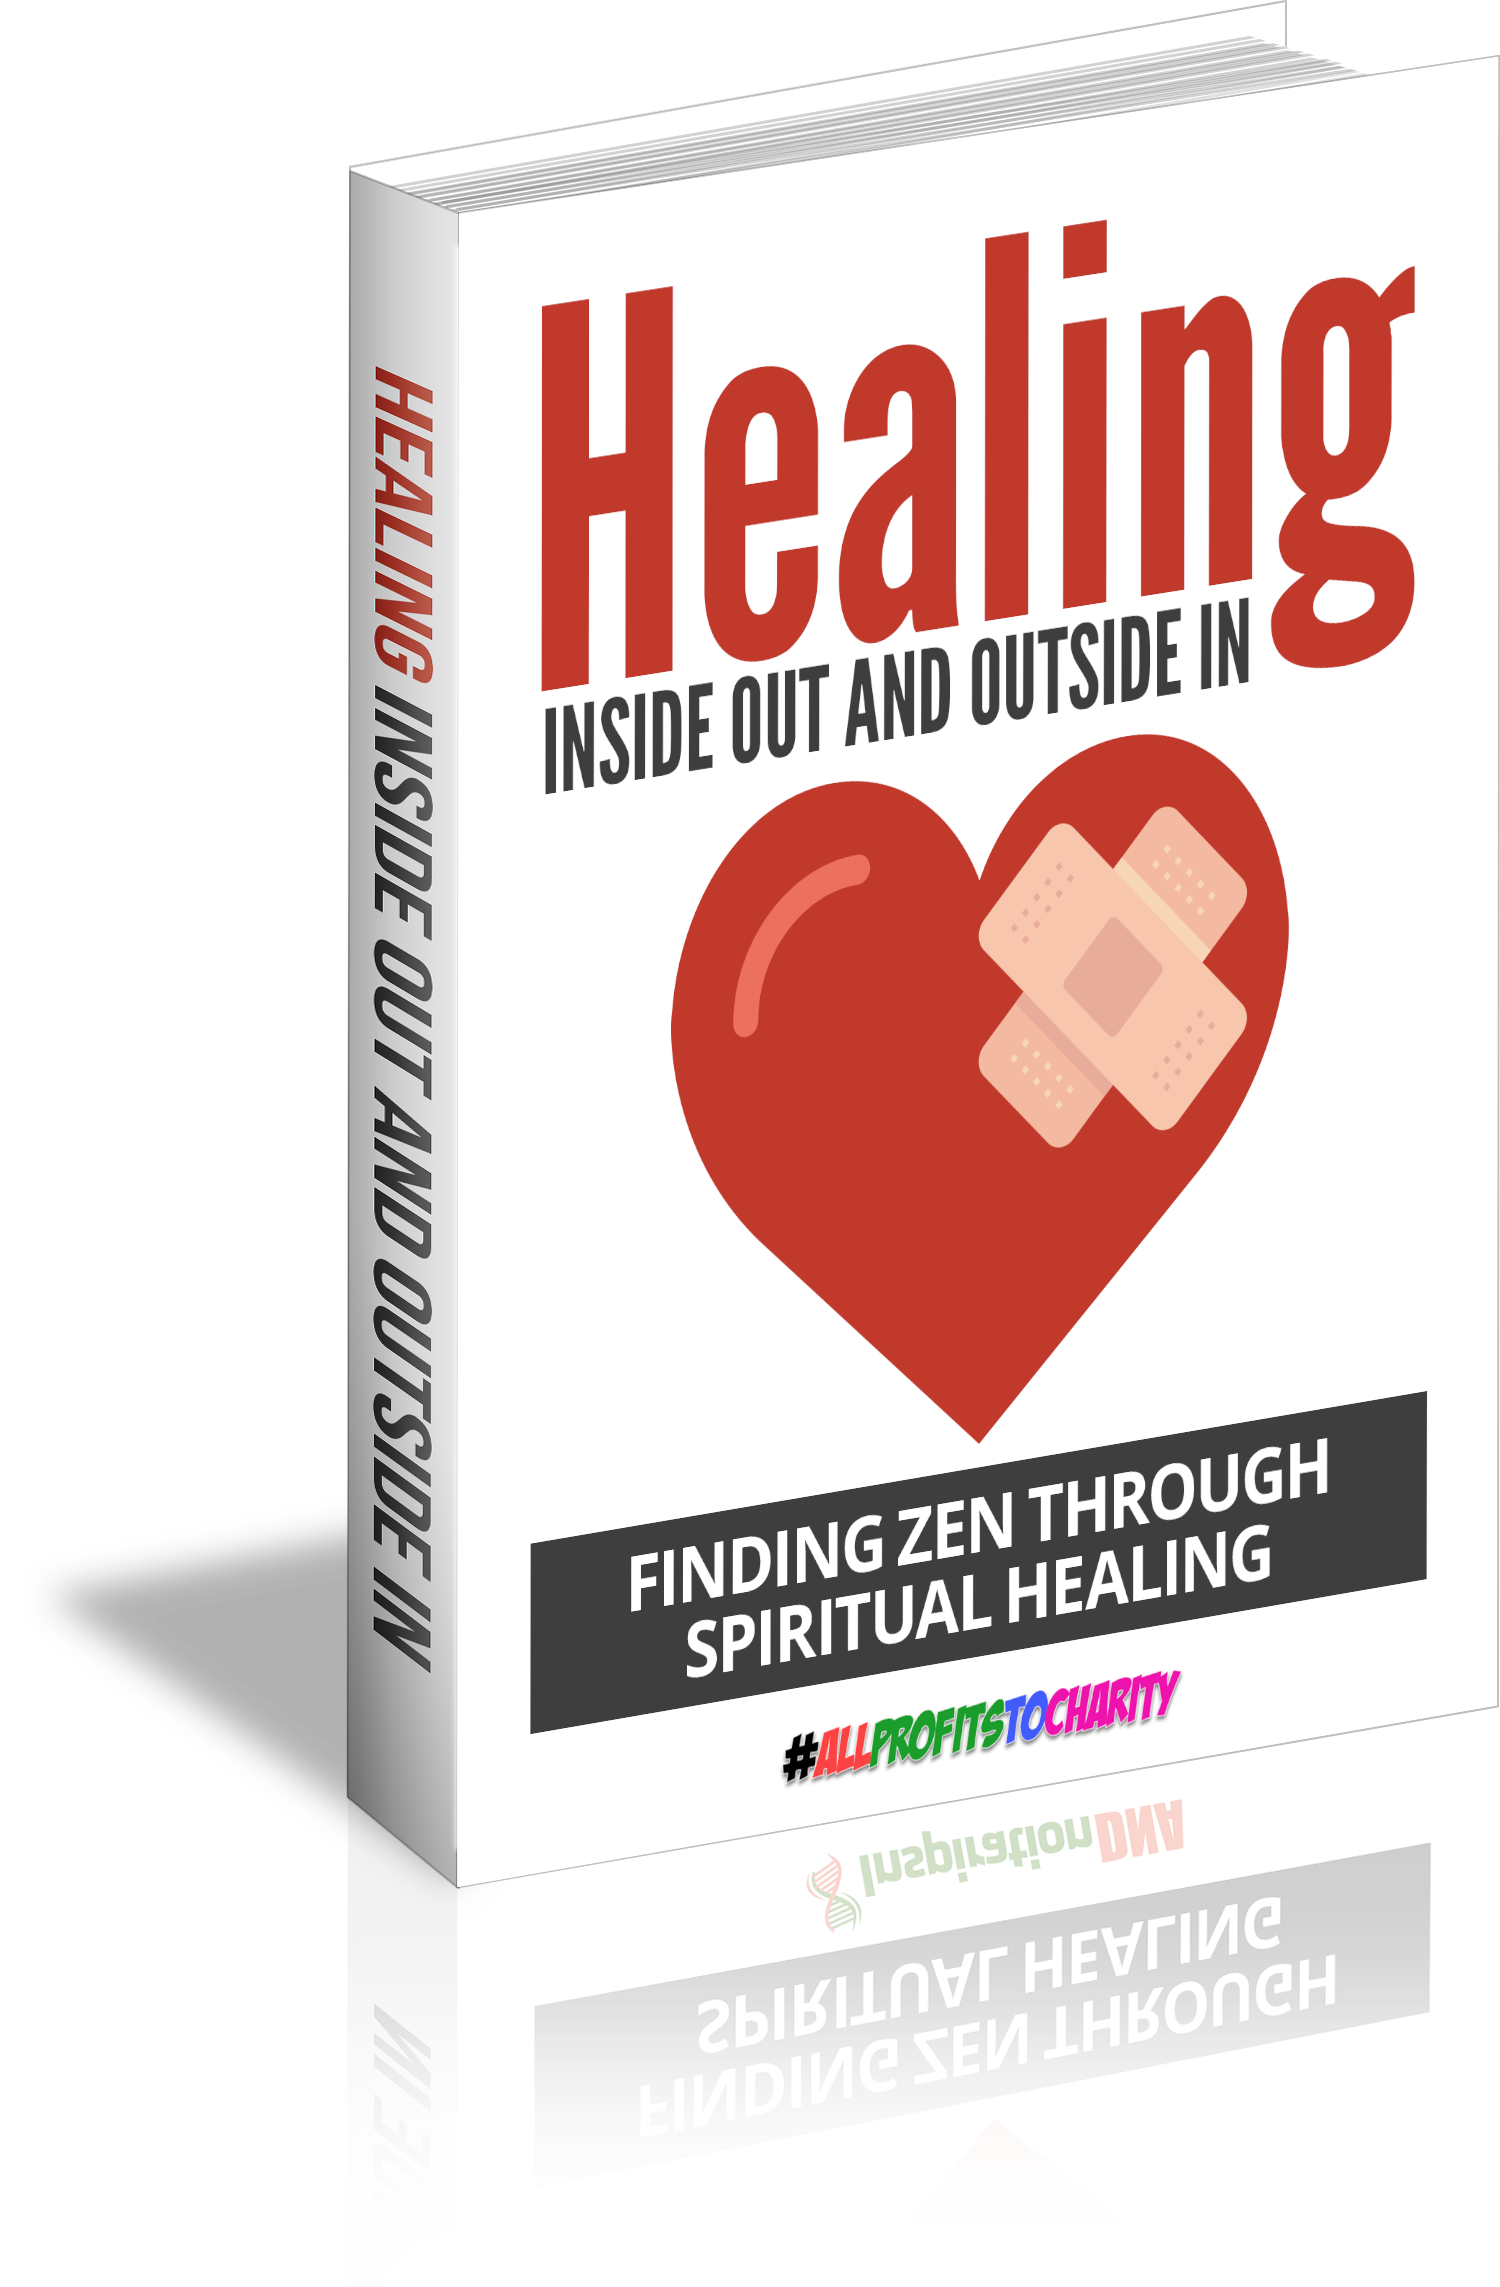 Healing Inside Out And Outside In cover